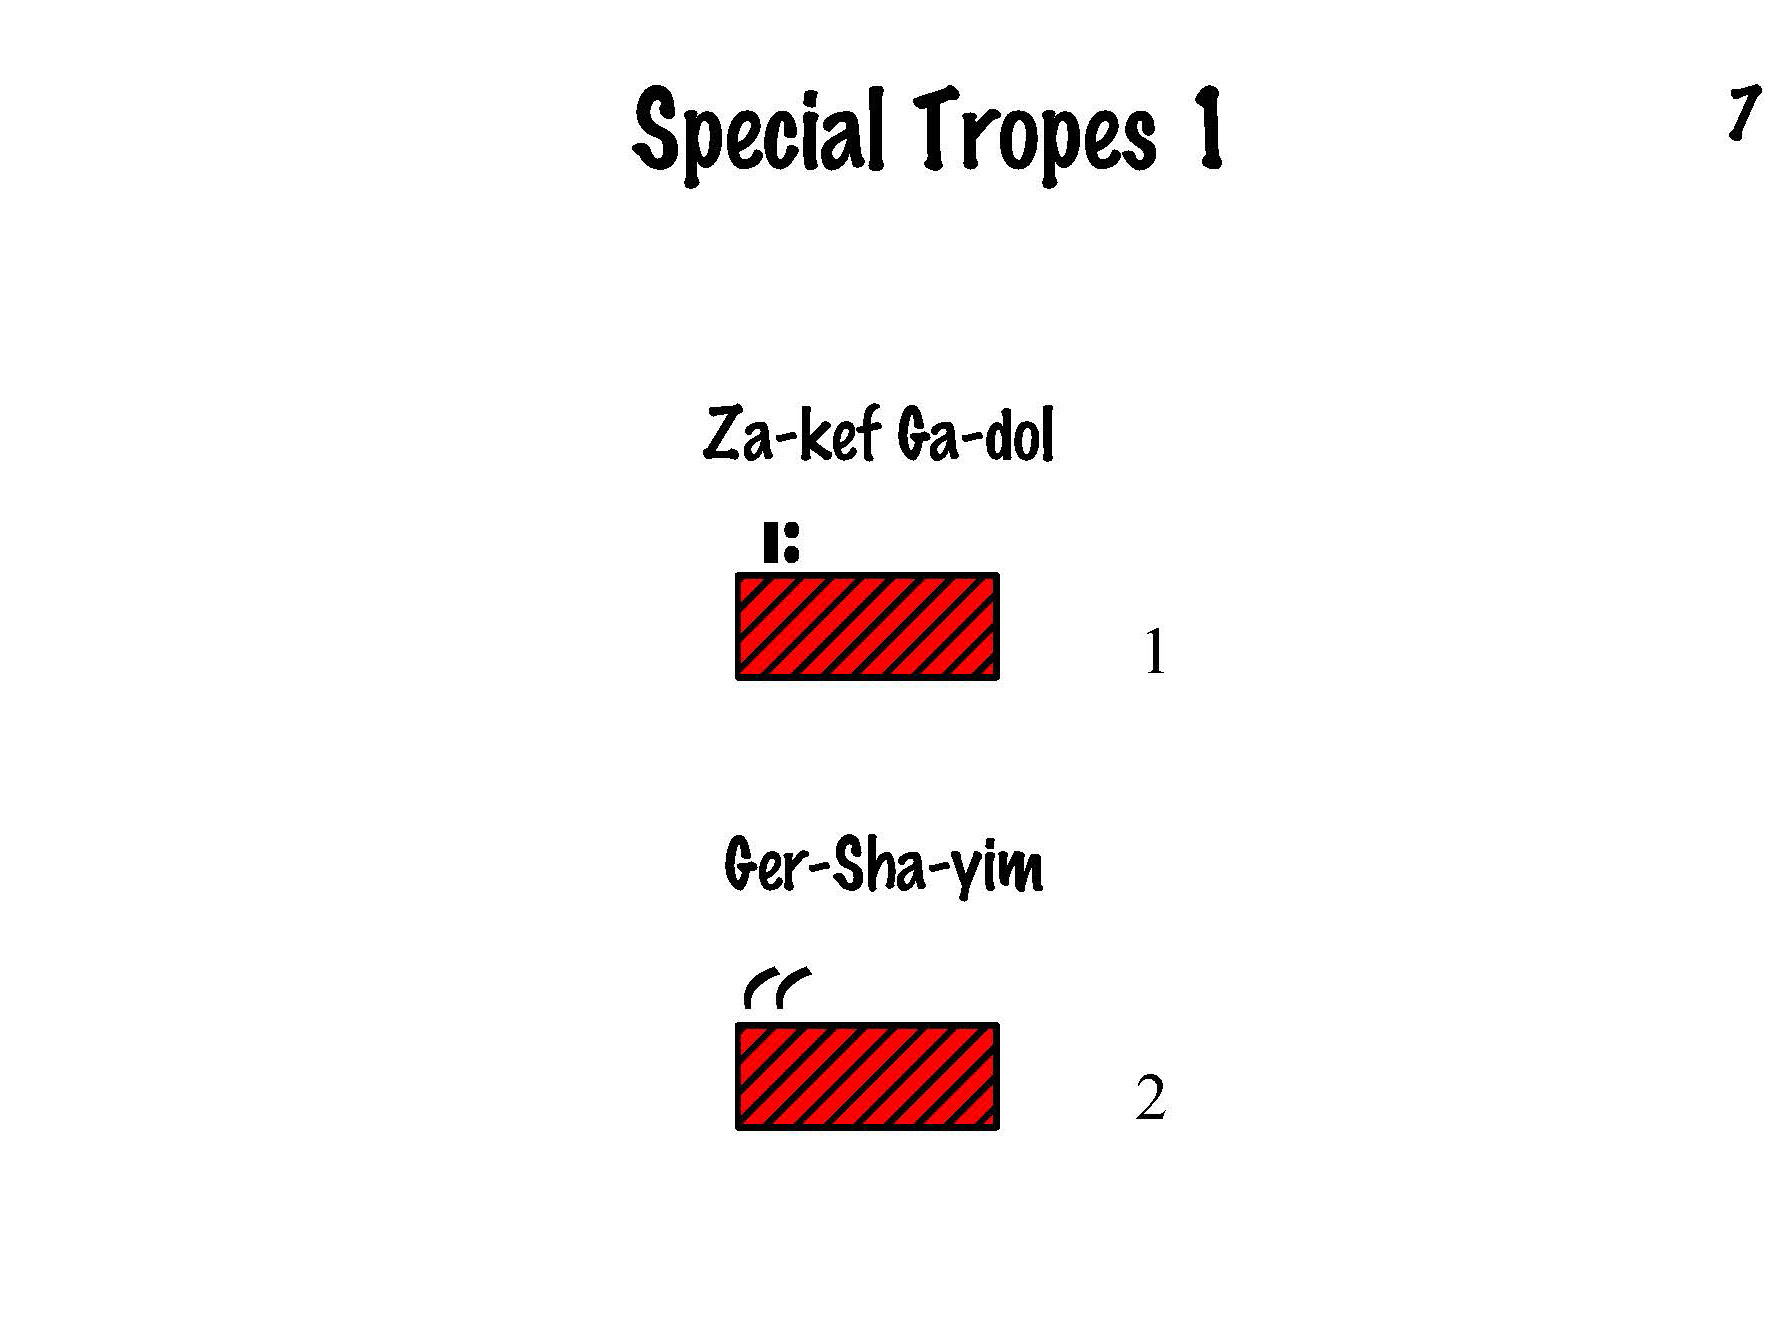 Special Tropes 1